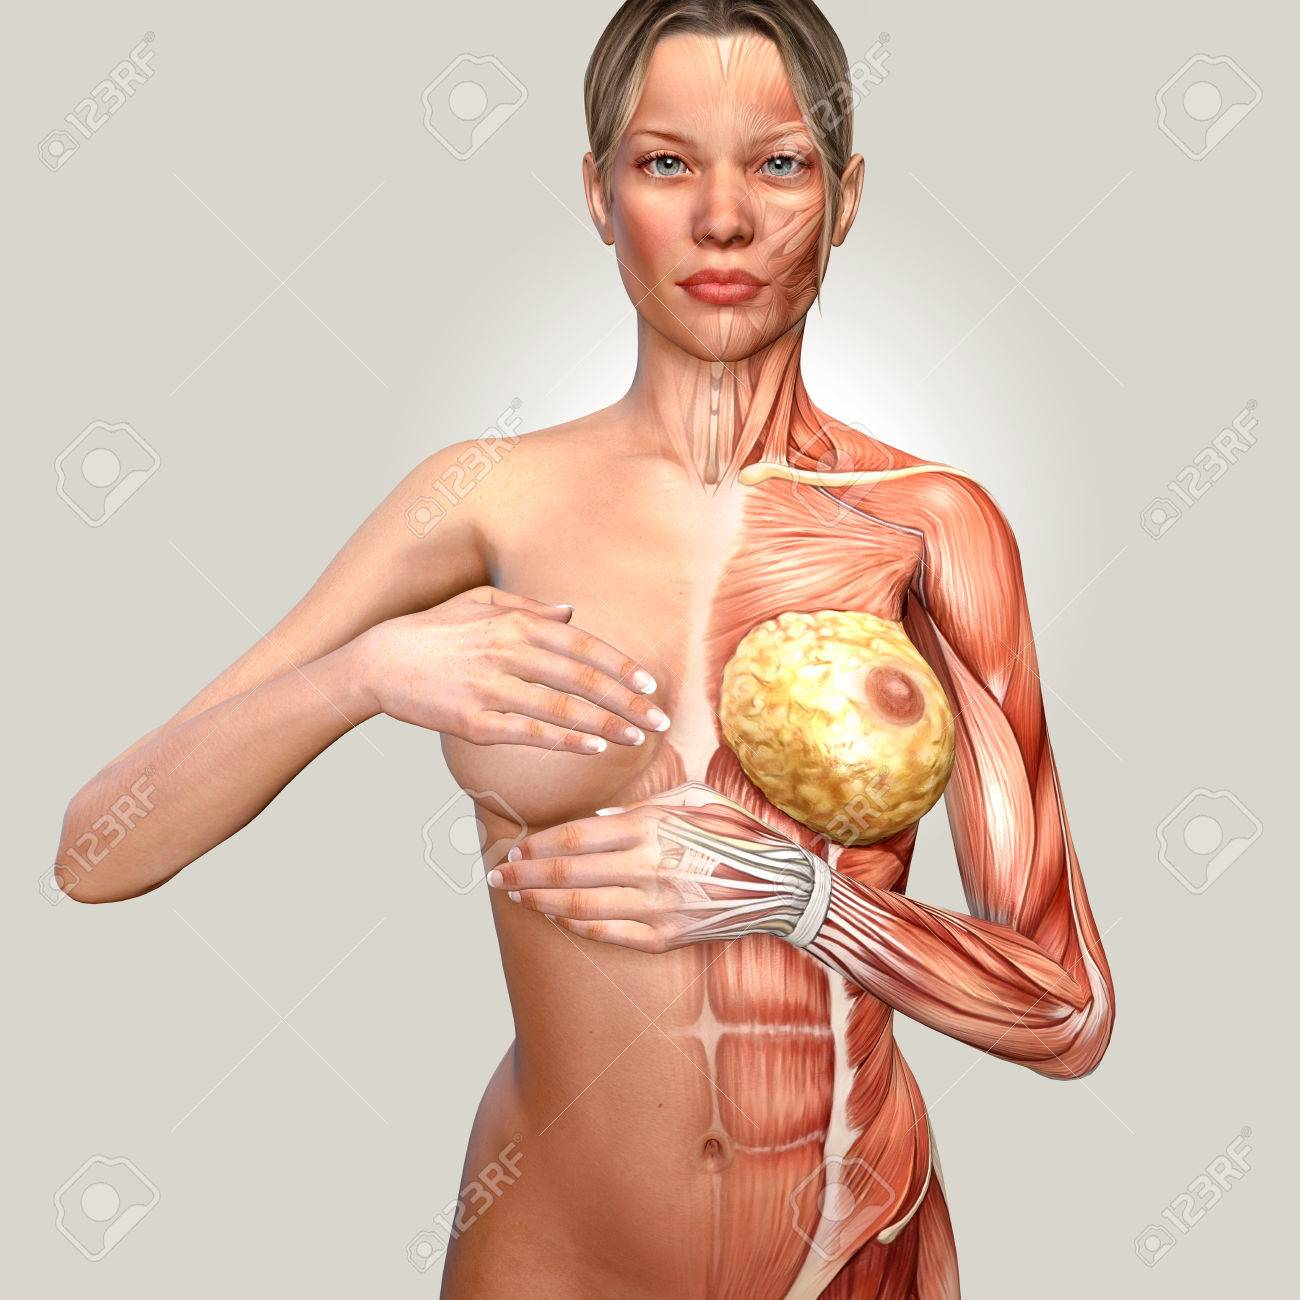 3d Illustration Of A Woman Anatomy Controlling Her Breast Stock ...